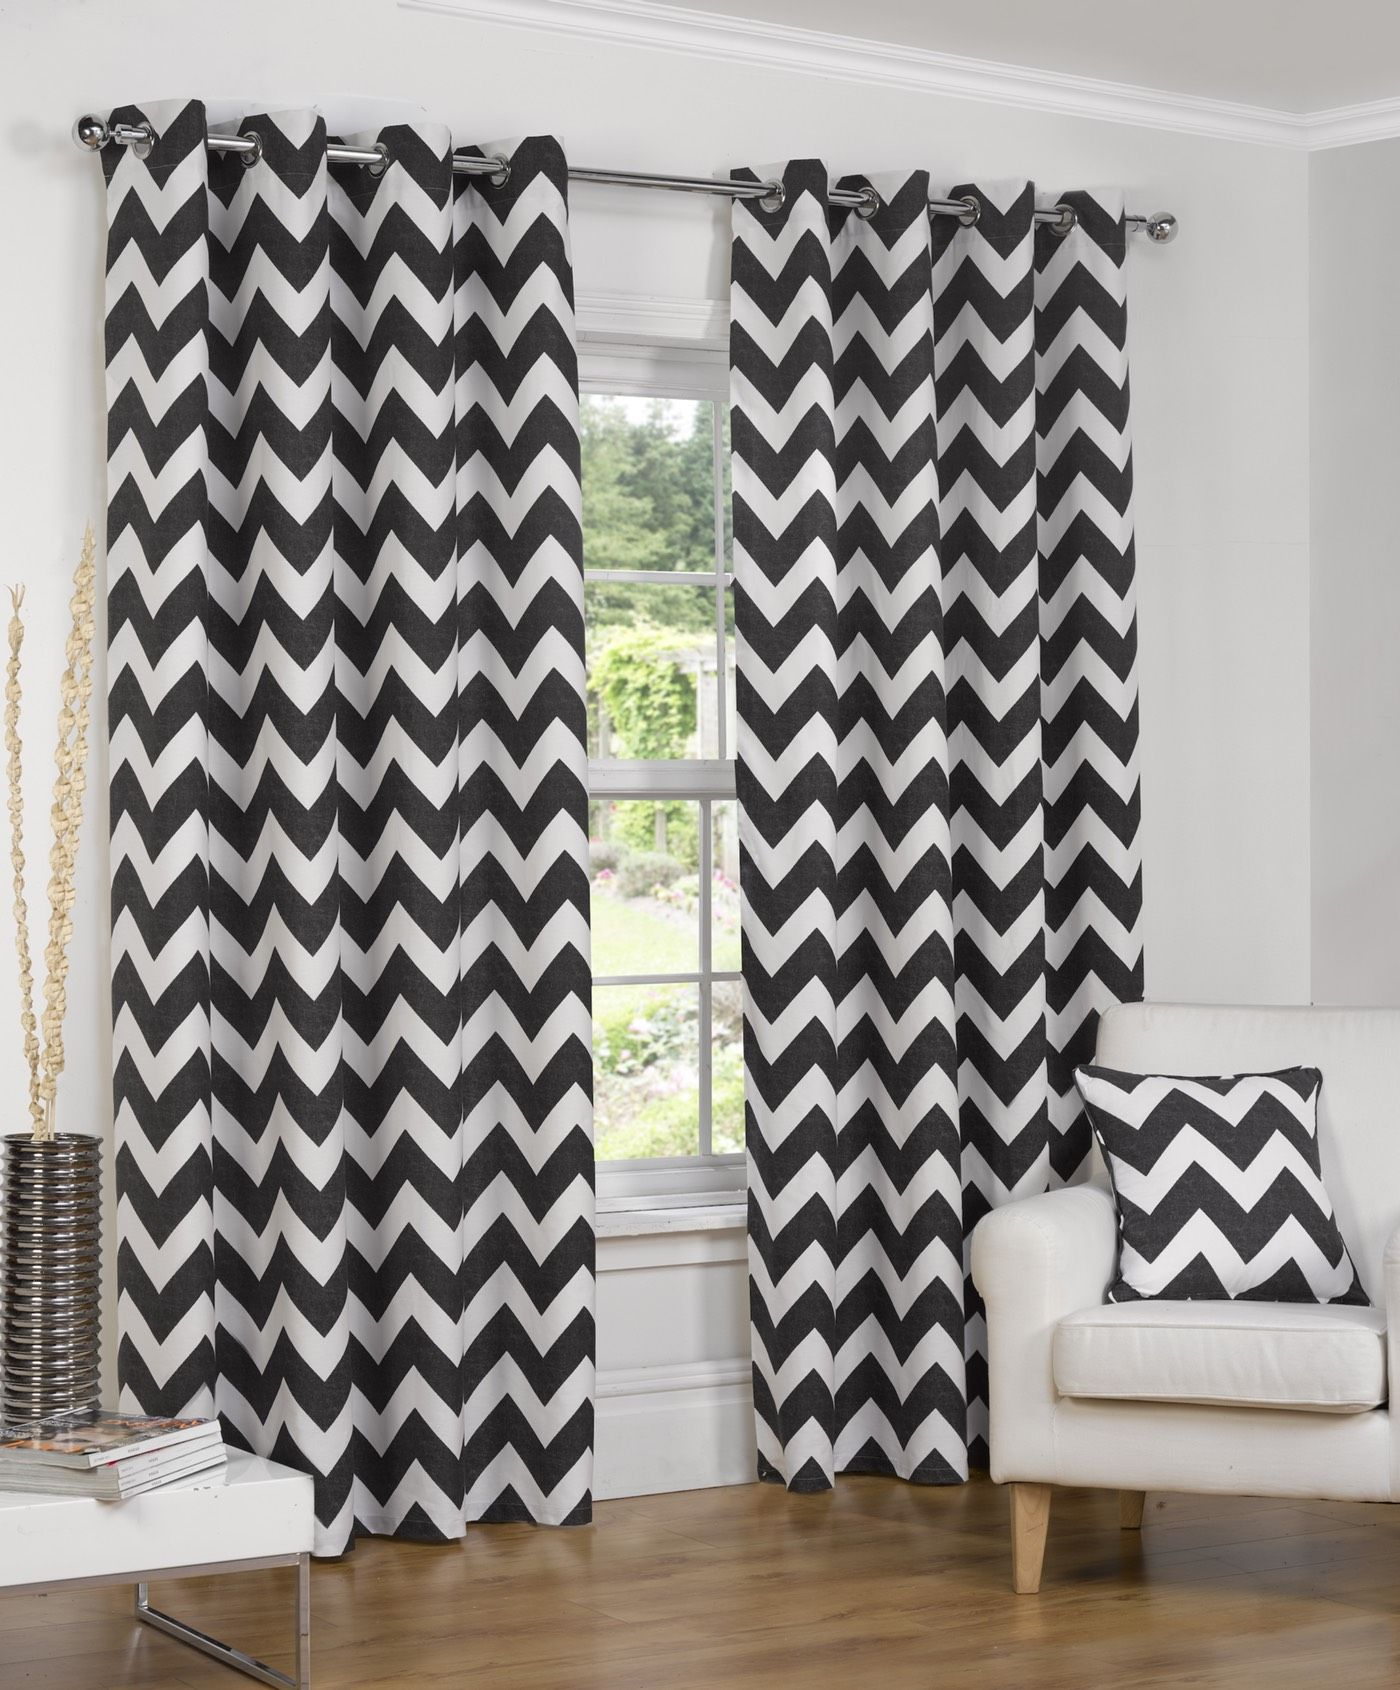 Black And White Chevron Blackout Curtains Furniture Ideas For Our Home Lined Curtains Curtains Chevron